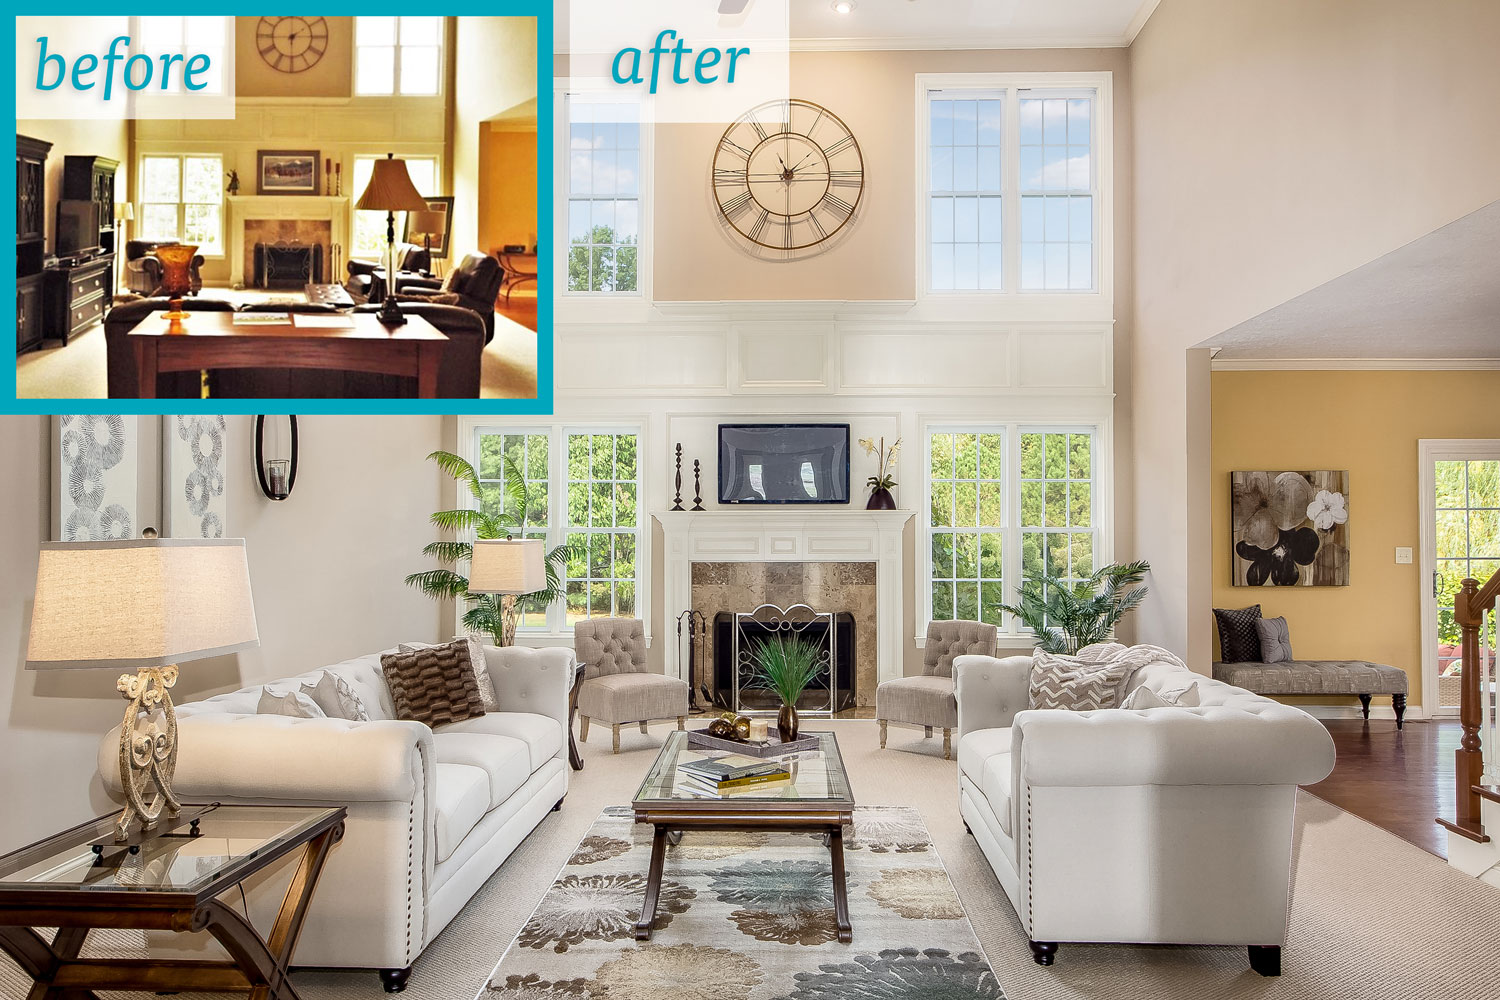 gediz-living-room-before-after.jpg